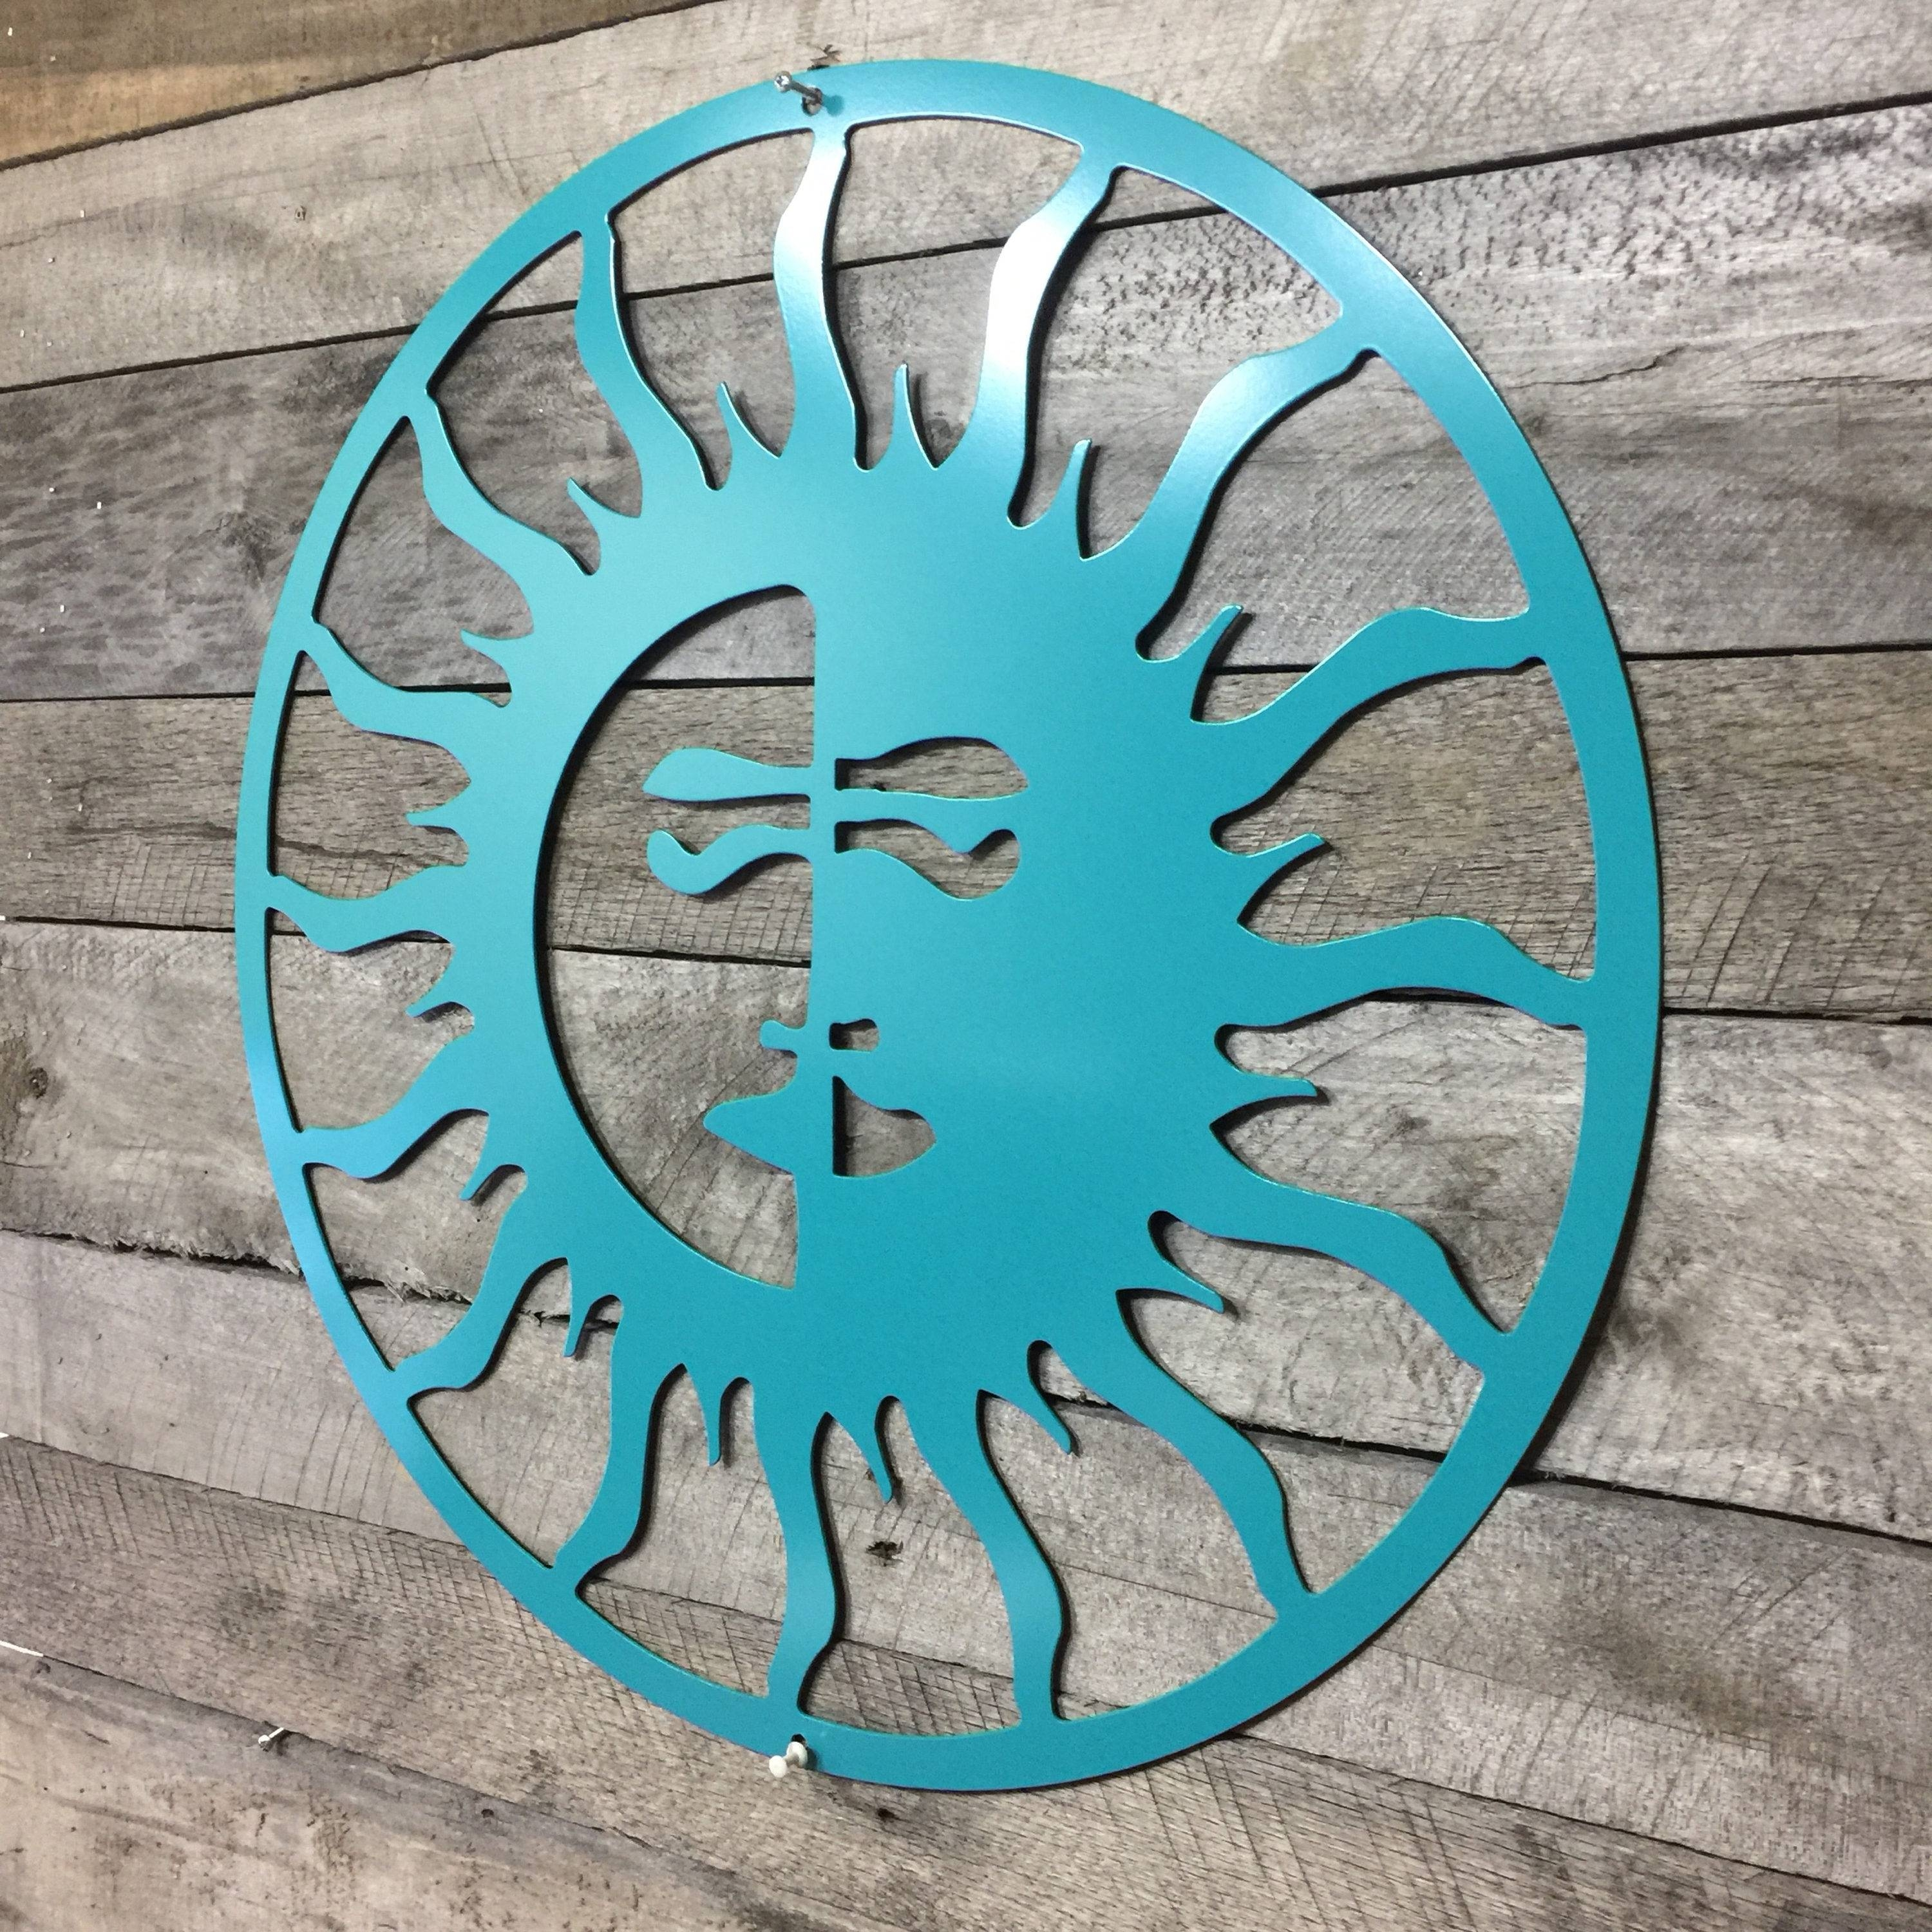 Sun/moon, Outdoor Art, Pool Art, Custom Metal Art, Metal Wall Art Intended For 2017 Sun And Moon Metal Wall Art (View 2 of 20)